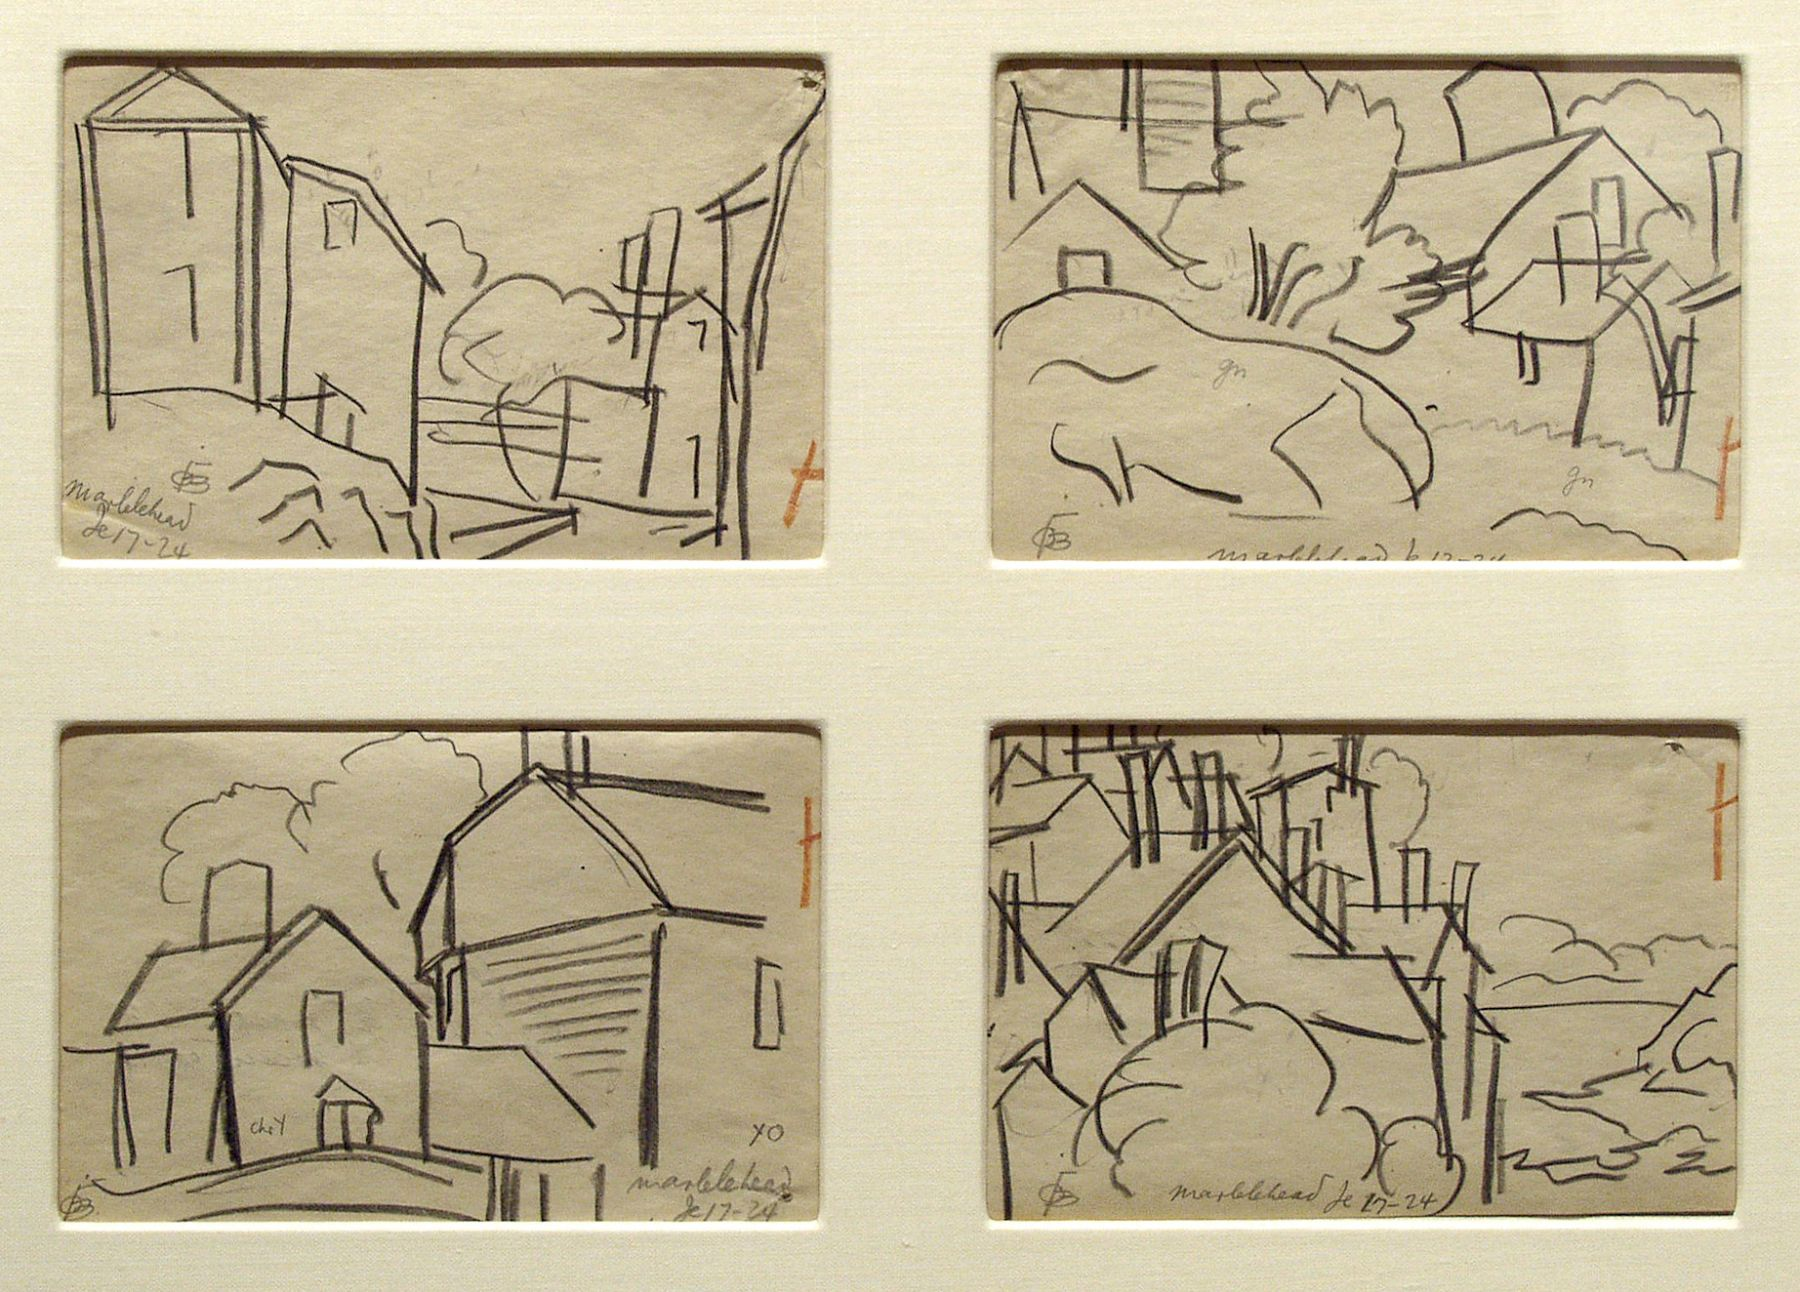 Oscar Bluemner, Marblehead, June 17, 1924, A-D, pencil on paper , 3 3/4 x 5 3/4 inches